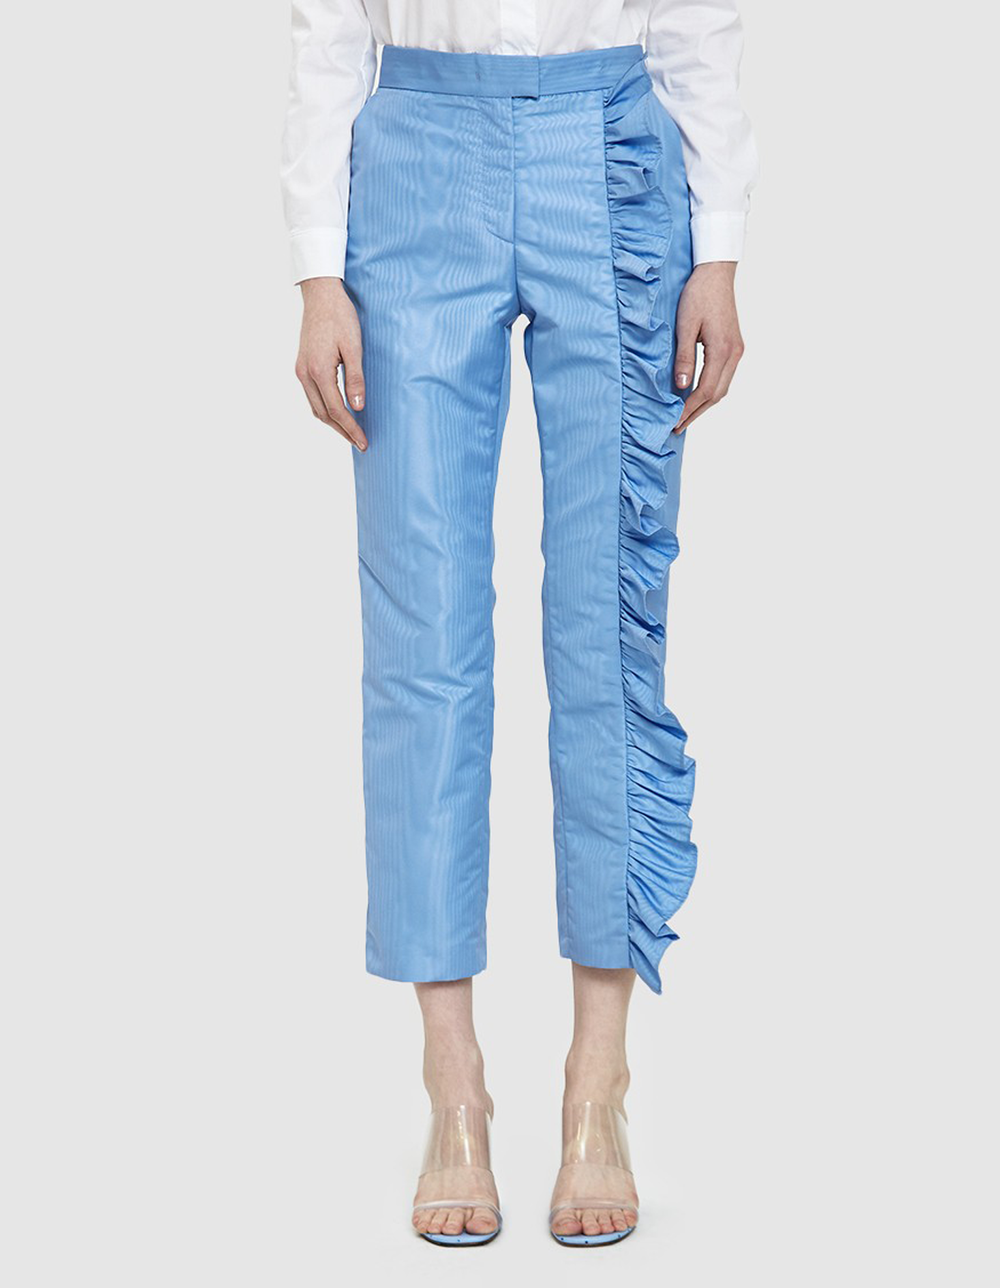 blue ruffle pant | @themissprints